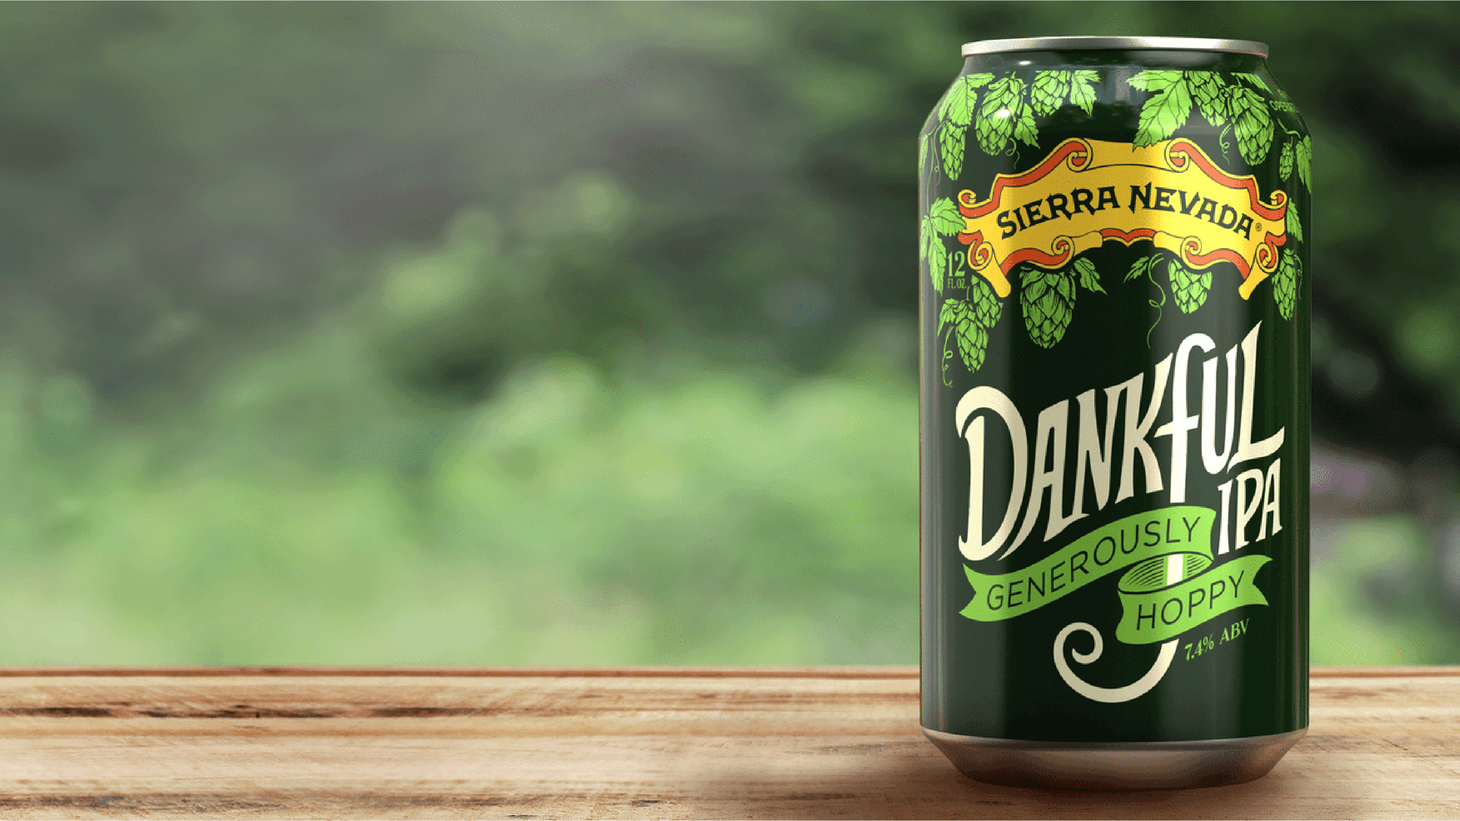 Through Dankful, Sierra Nevada has committed at least $1 million in donations through 2021 to spotlight nonprofits nationwide.